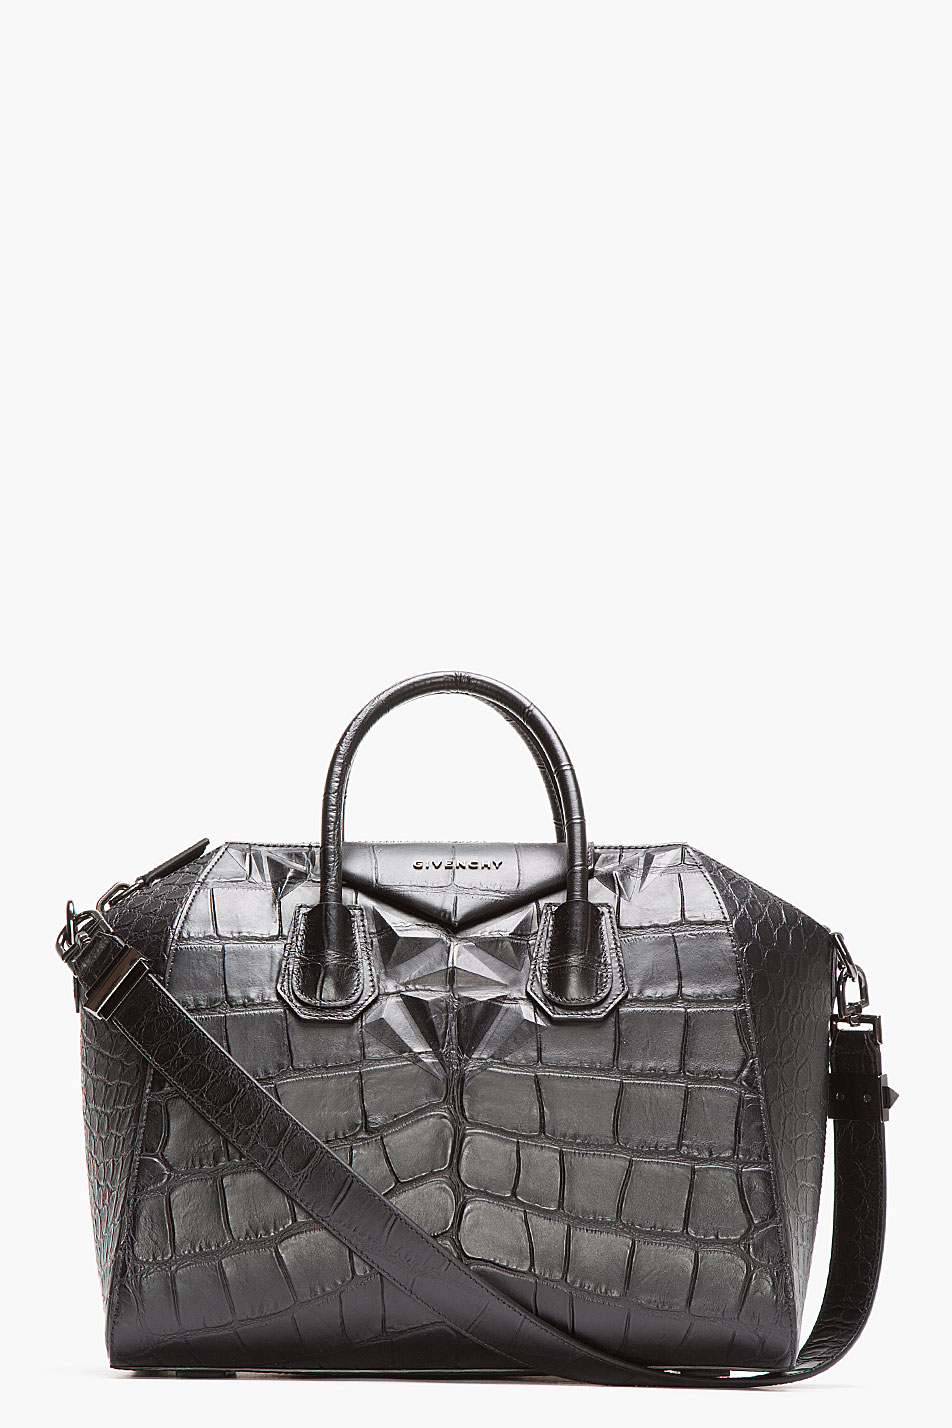 8bcca8087f Lyst - Givenchy Black Leather Croc Embossed Antigona Duffle Bag in Gray